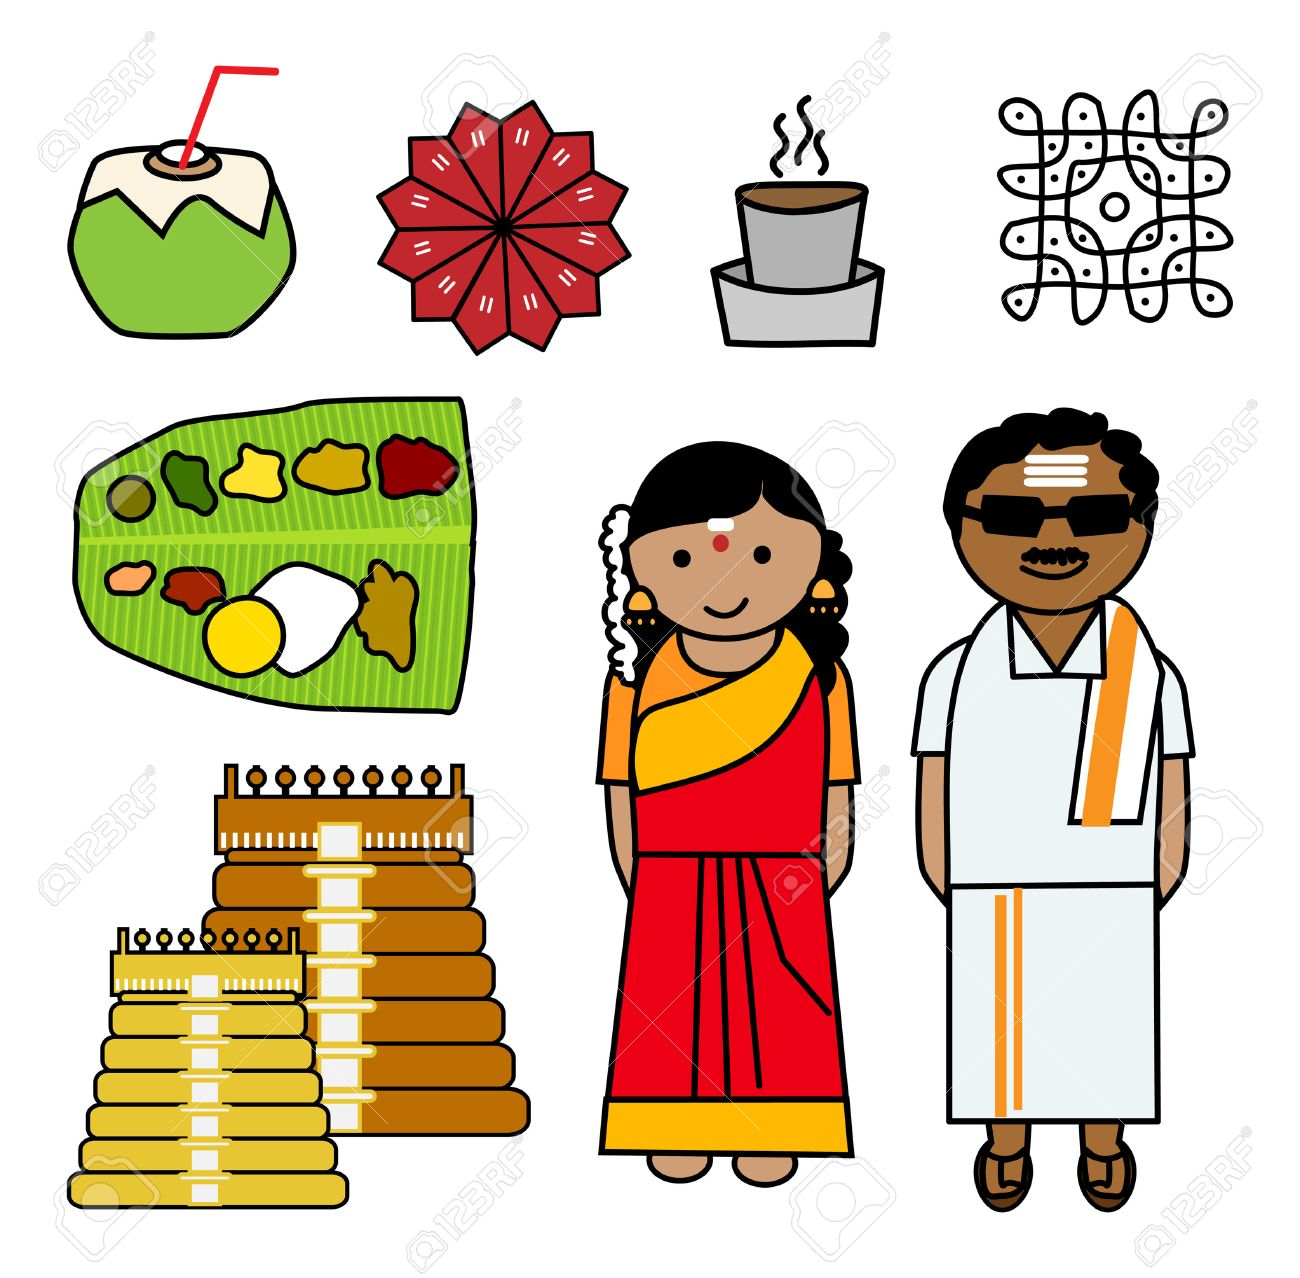 hight resolution of indian couple clipart 4